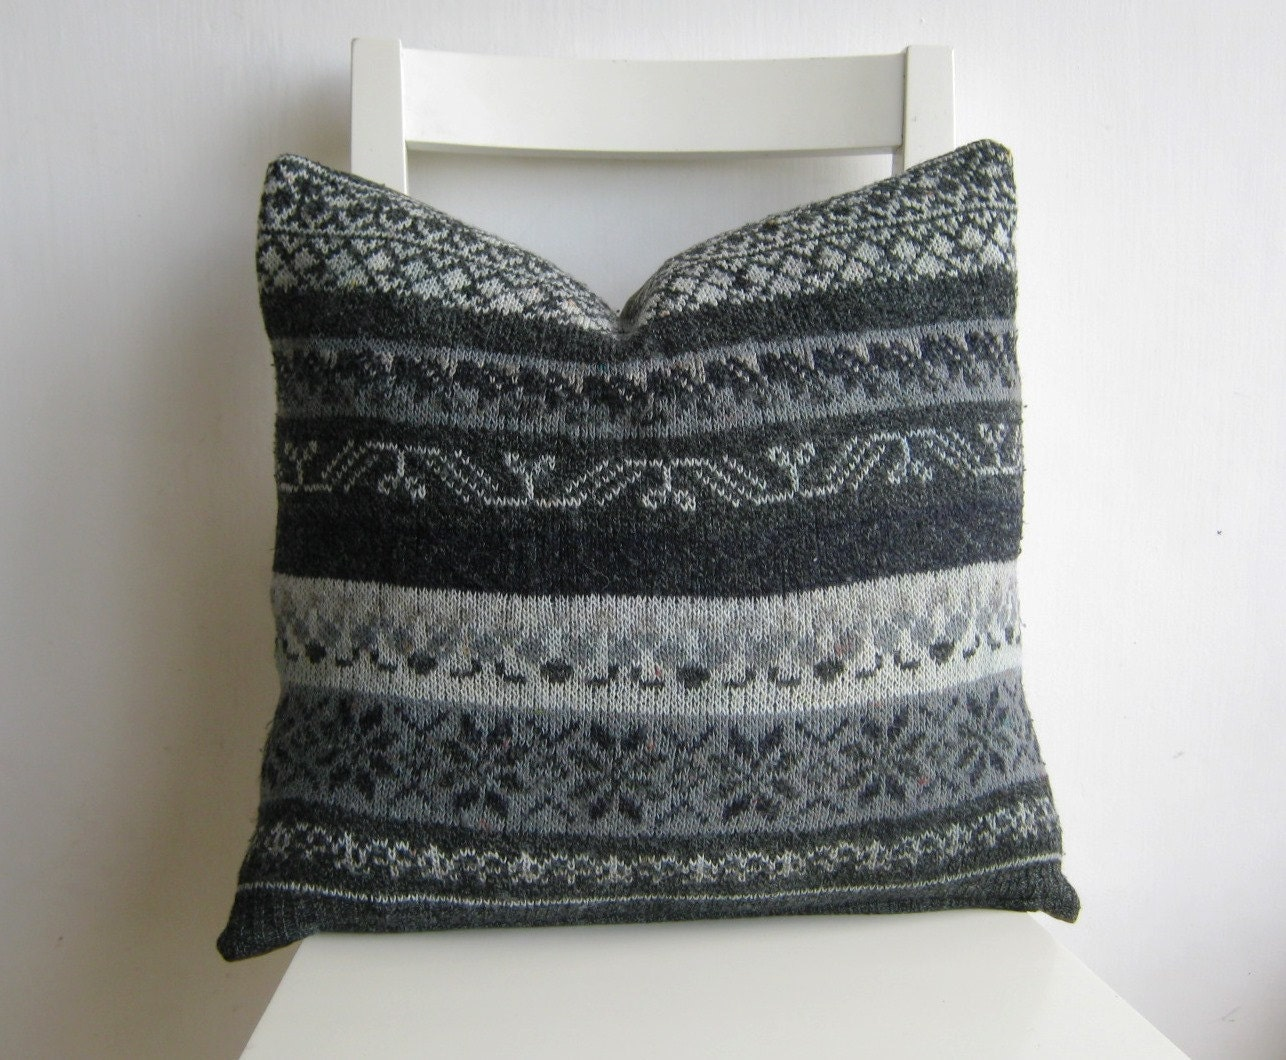 18 x 18 Sweater Pillow cover - pillow1